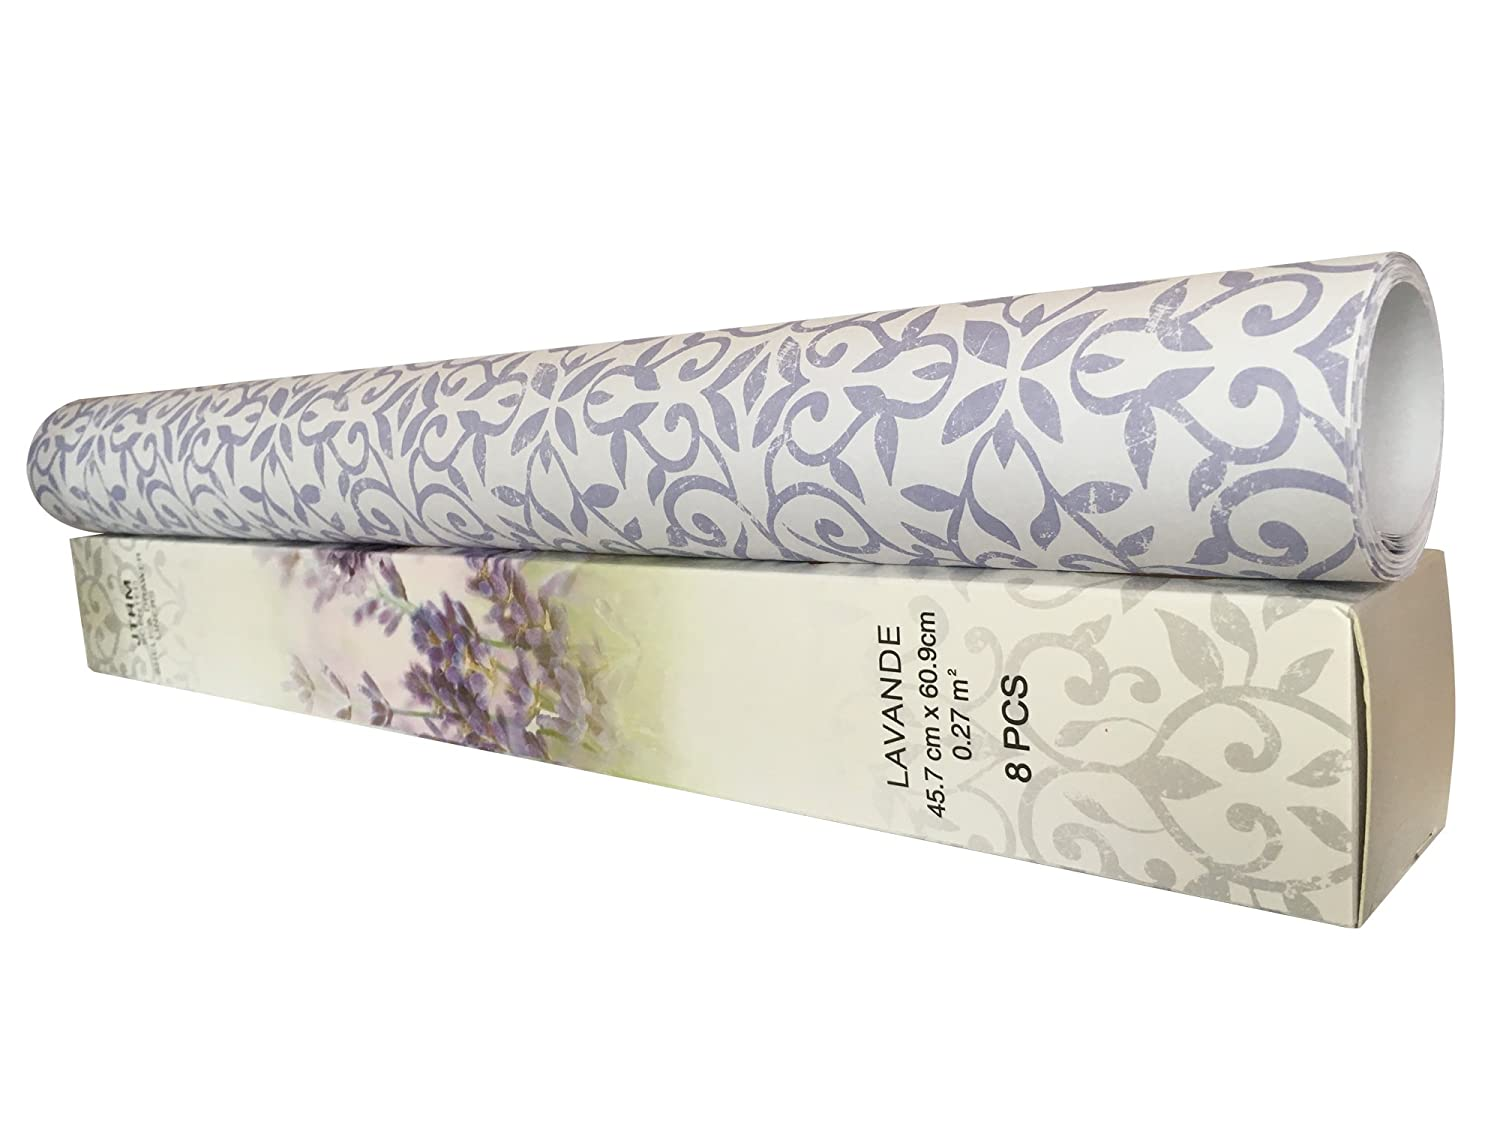 JTHM 8 Sheets Scented Drawer & Shelf Liners - Lavender Fragranced Drawer